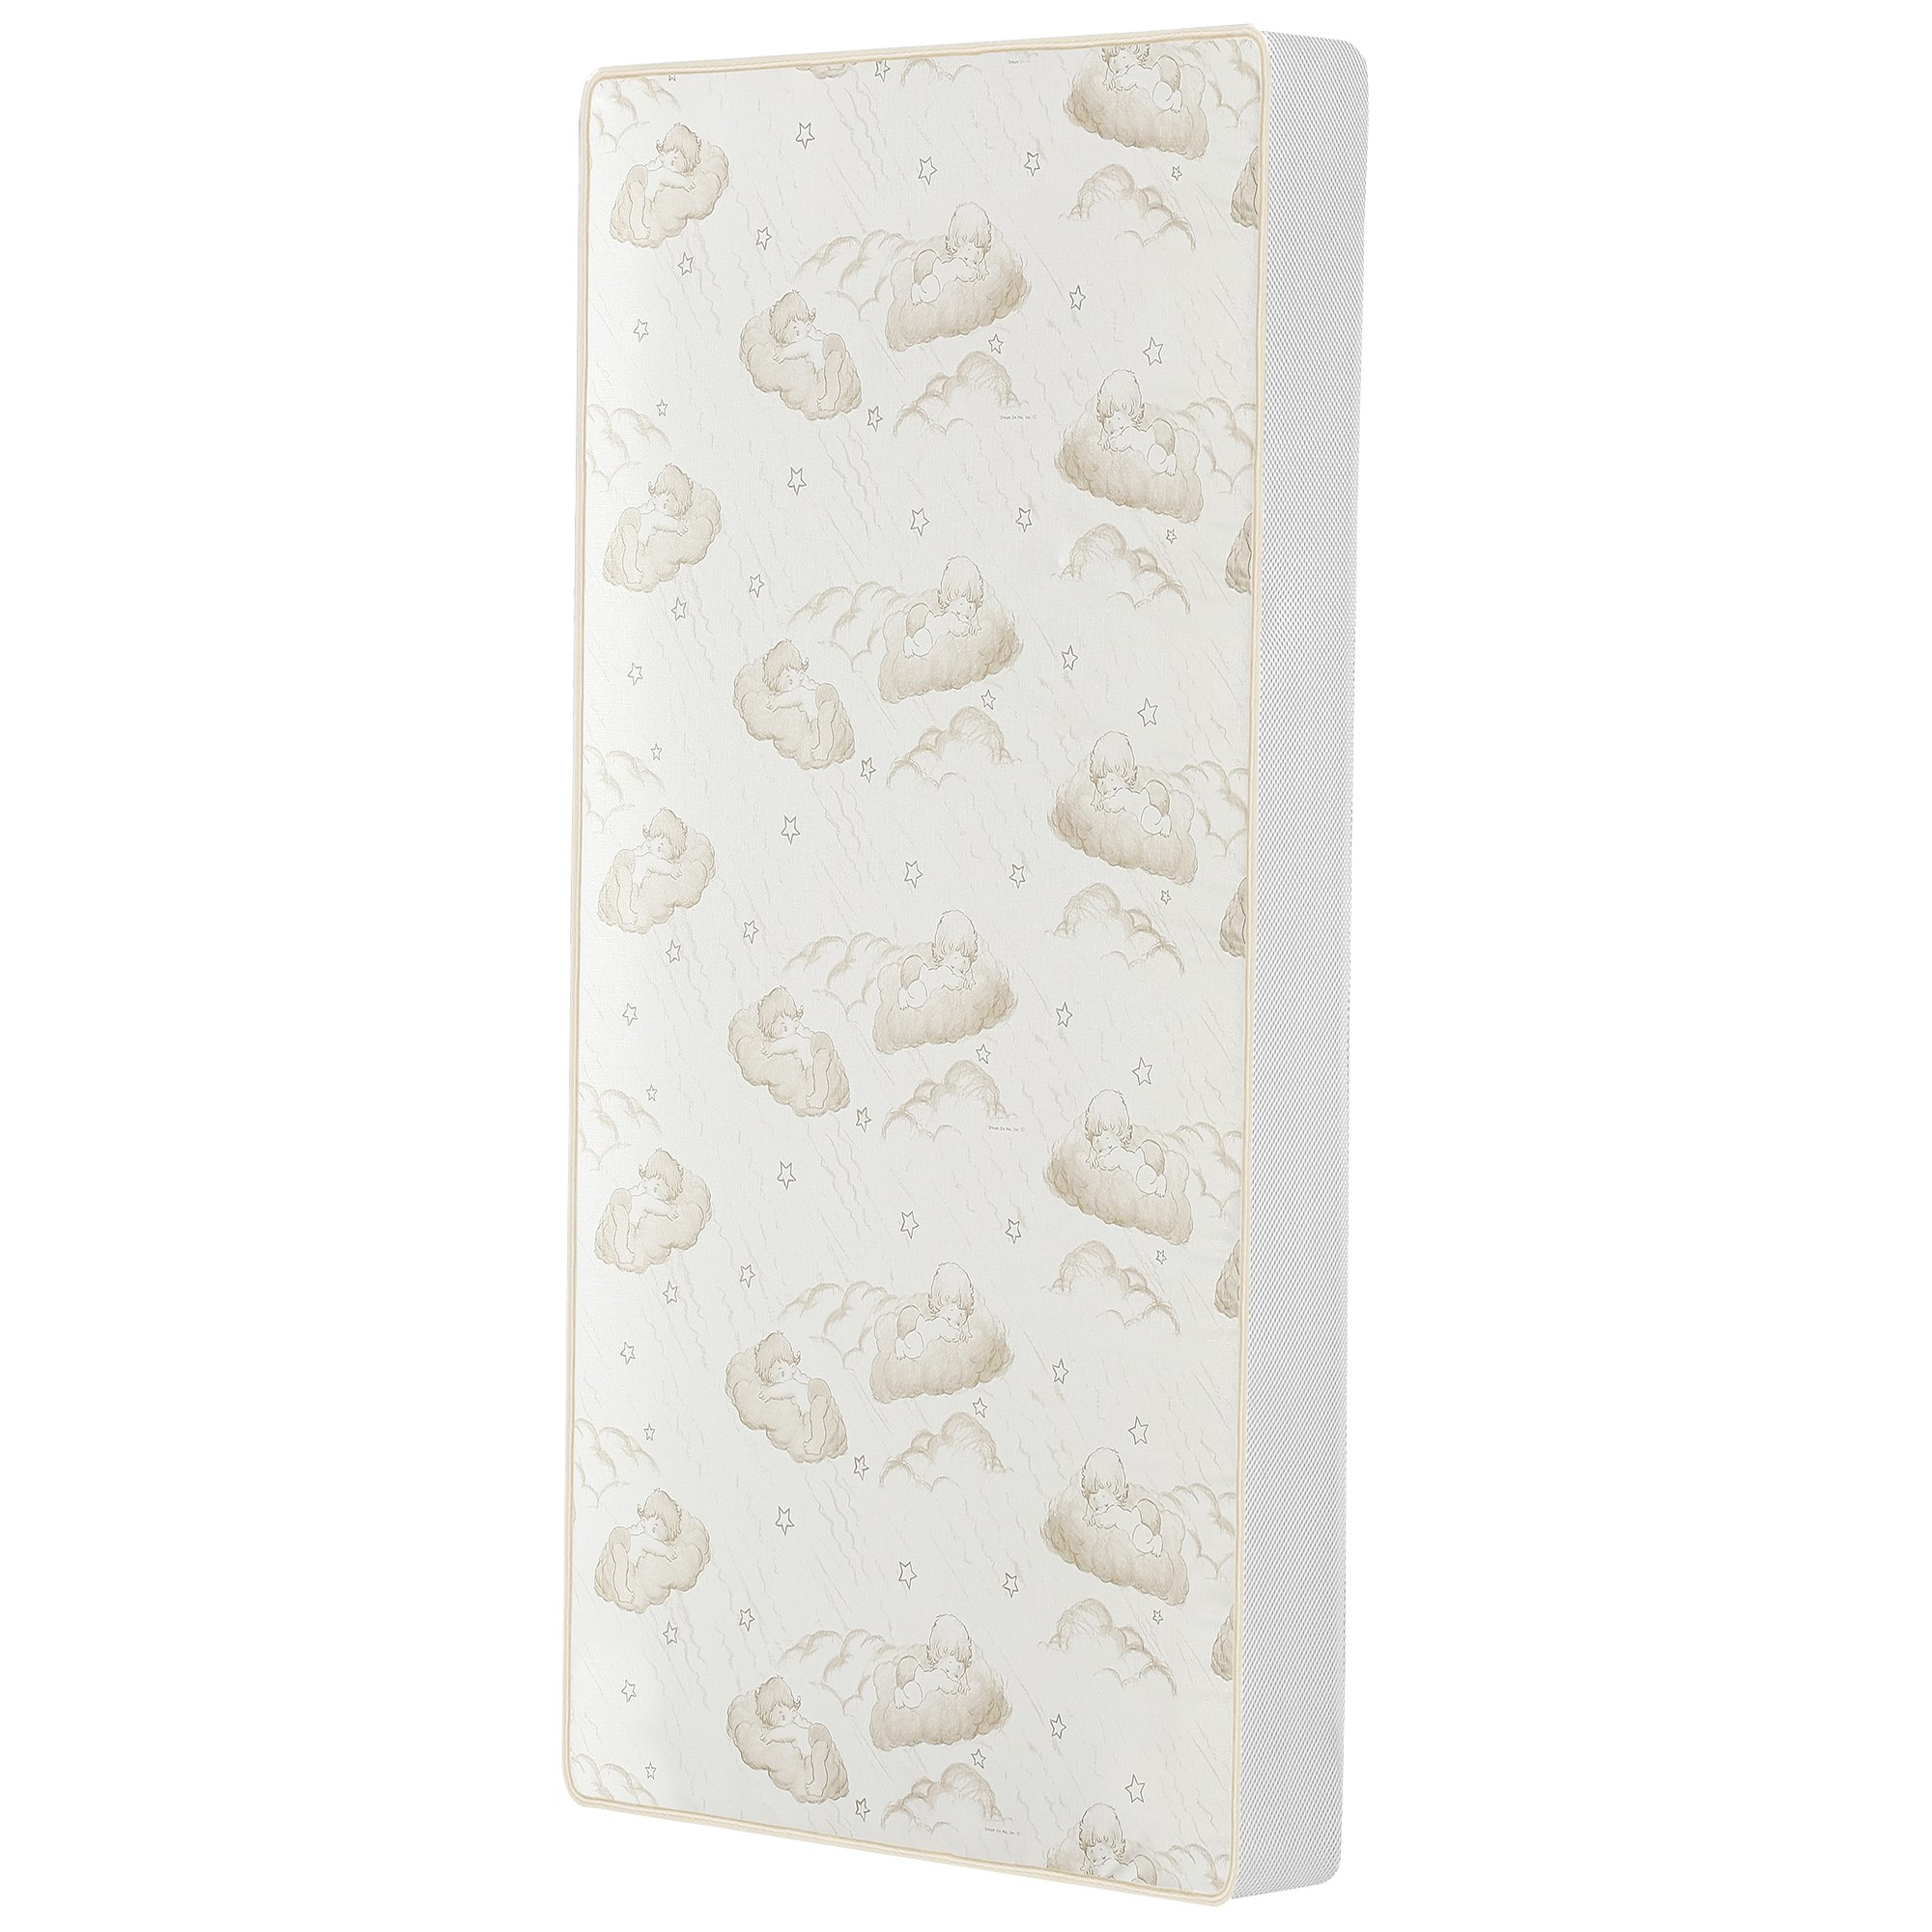 Dream On Me 2-in-1 Breathable Twilight 5'' Spring Coil Crib and Toddler Bed Mattress with Reversible Design, White/Brown by Dream On Me